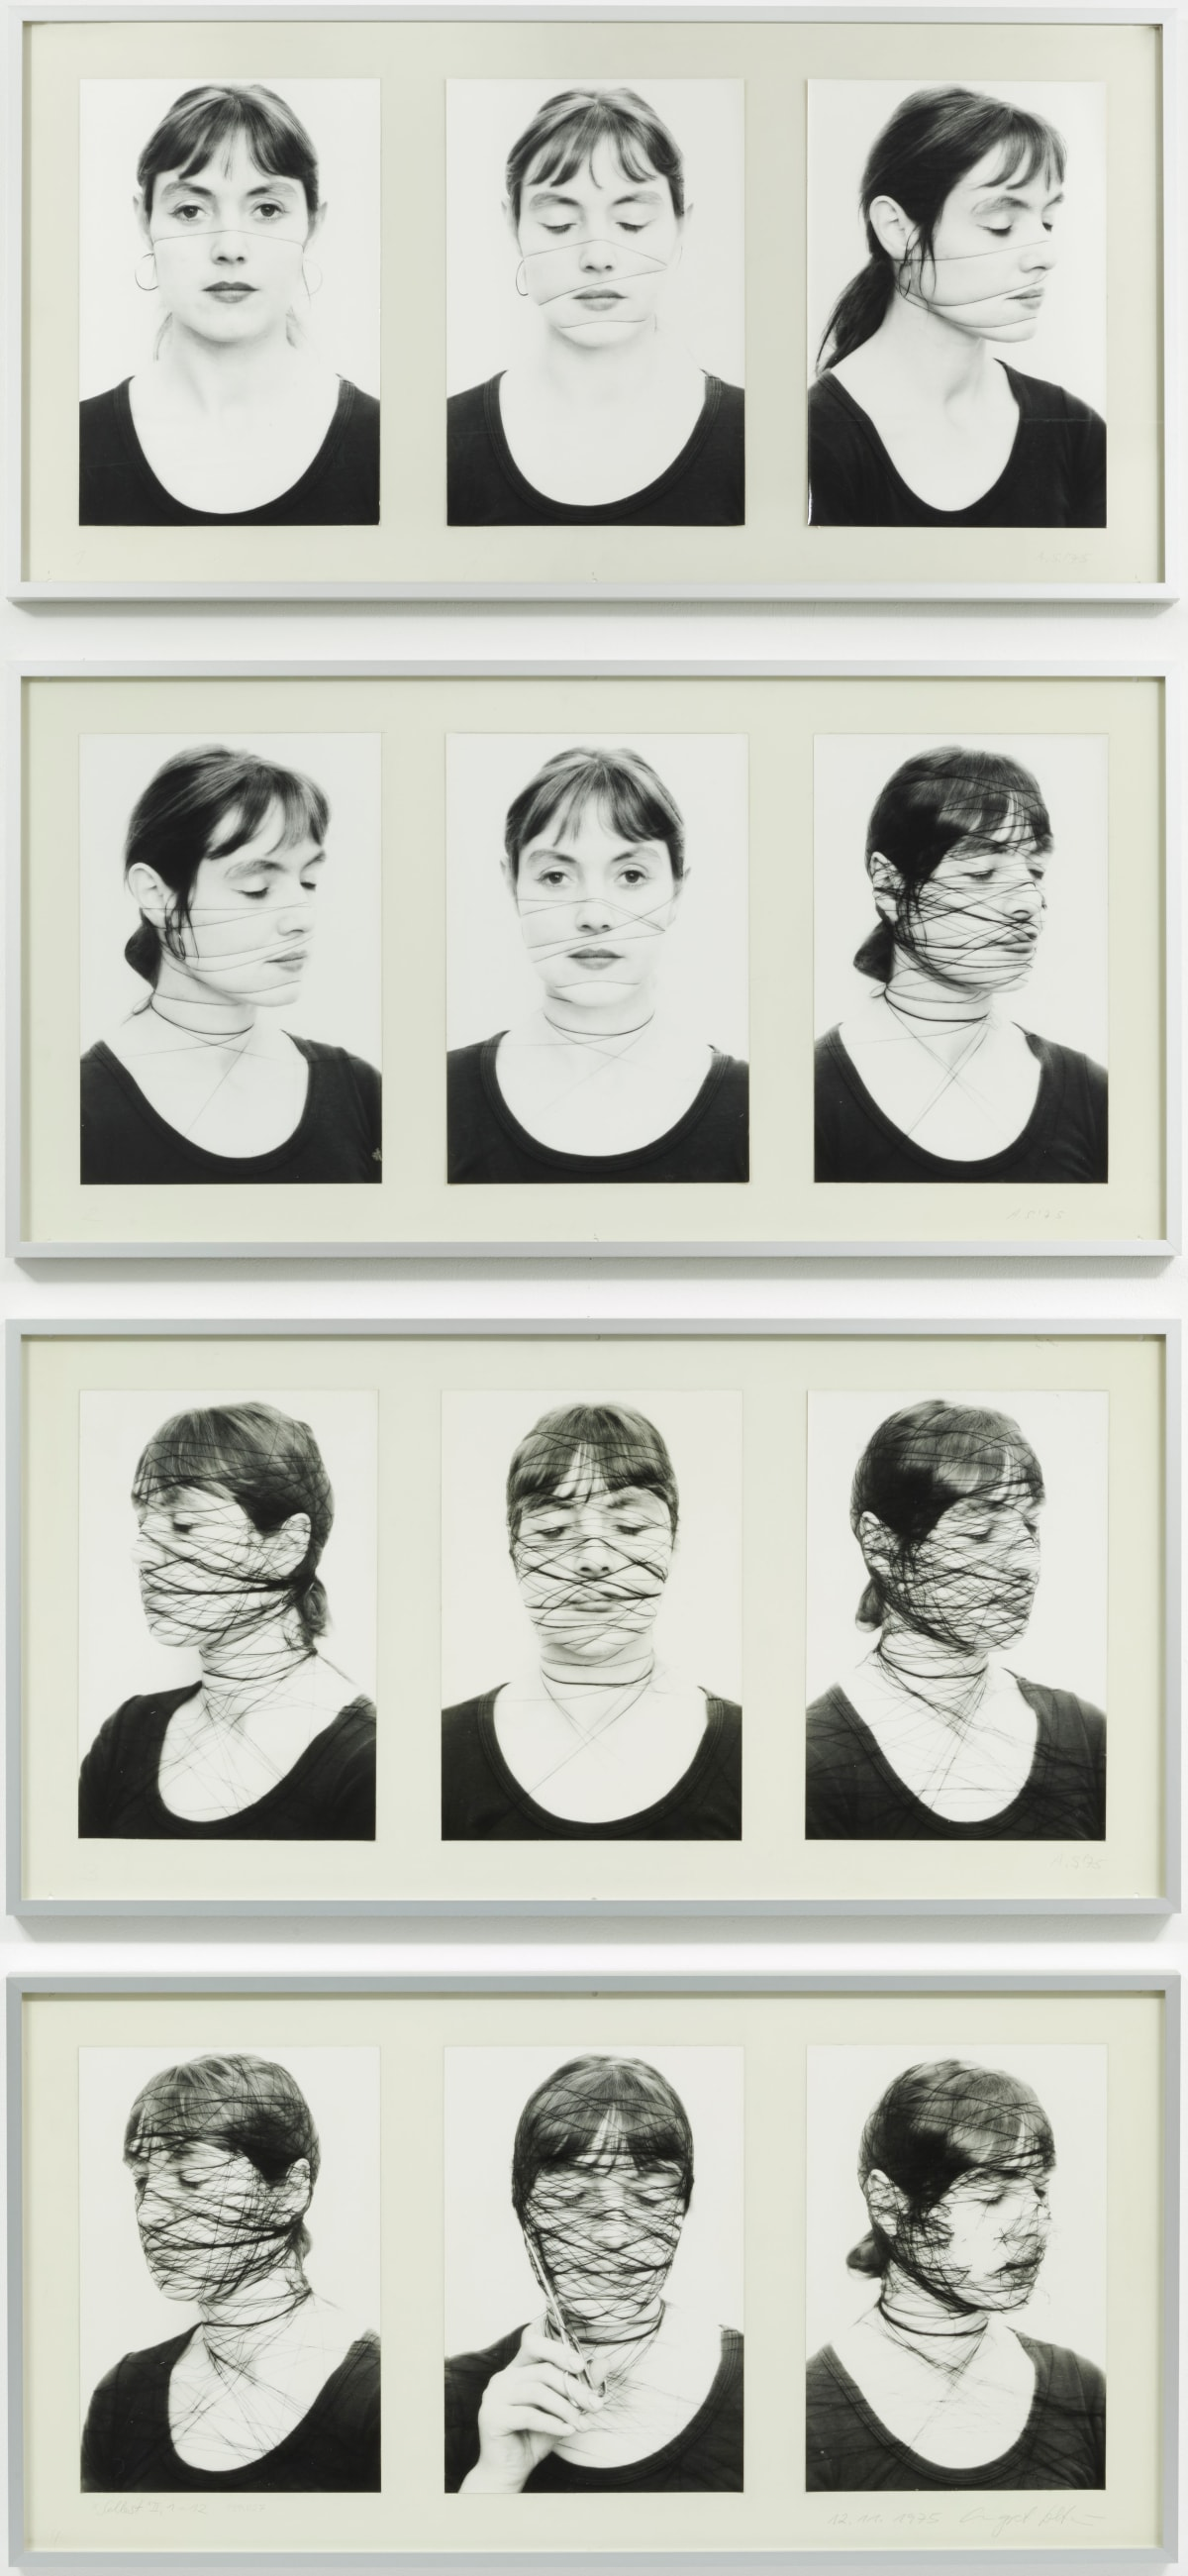 Annegret SOLTAU Selbst II, 1-12 (Self II, 1-12), 1975 12 black and white photographs on baryta paper mounted on cardboard Each: 51.5 x 101.5 cm